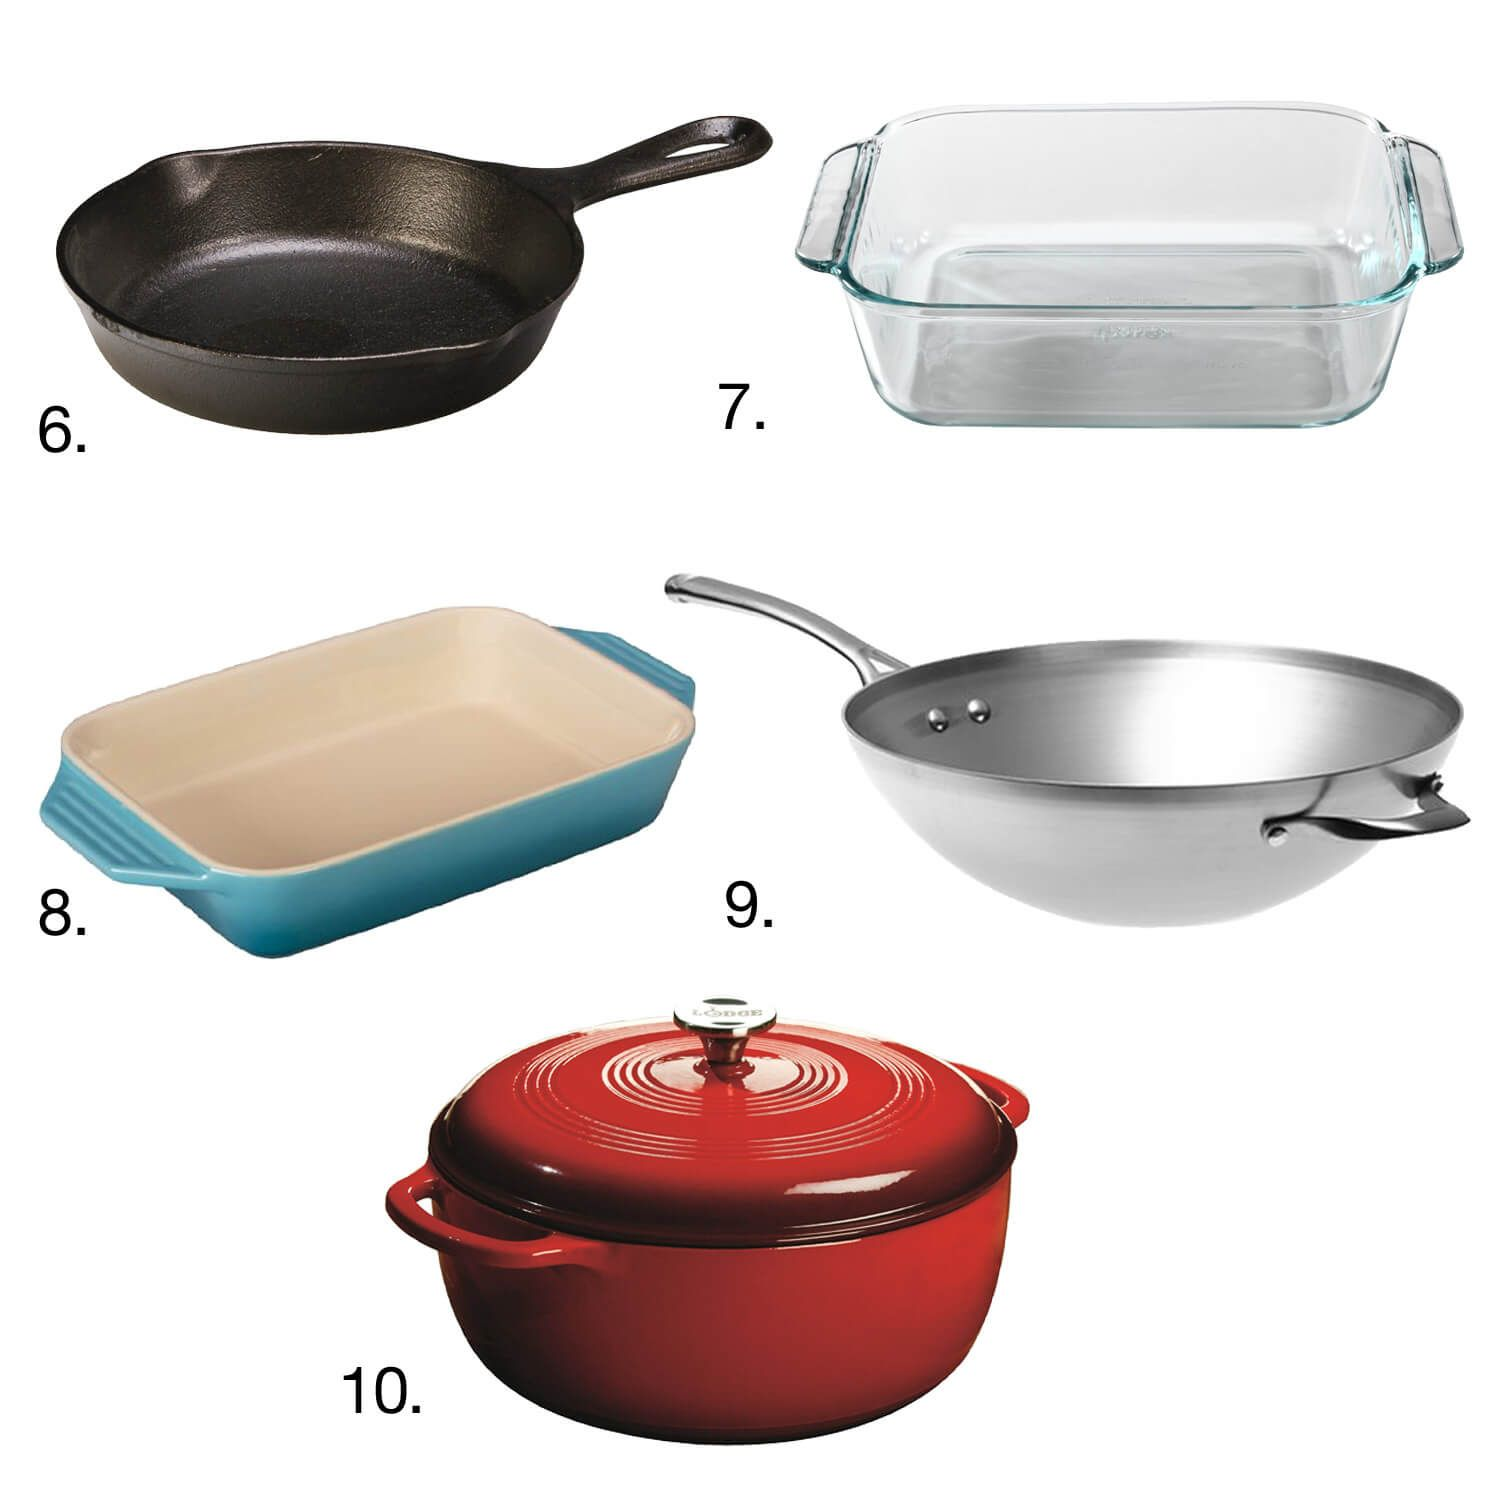 The Ultimate Guide to Safe, Nontoxic Cookware | Health